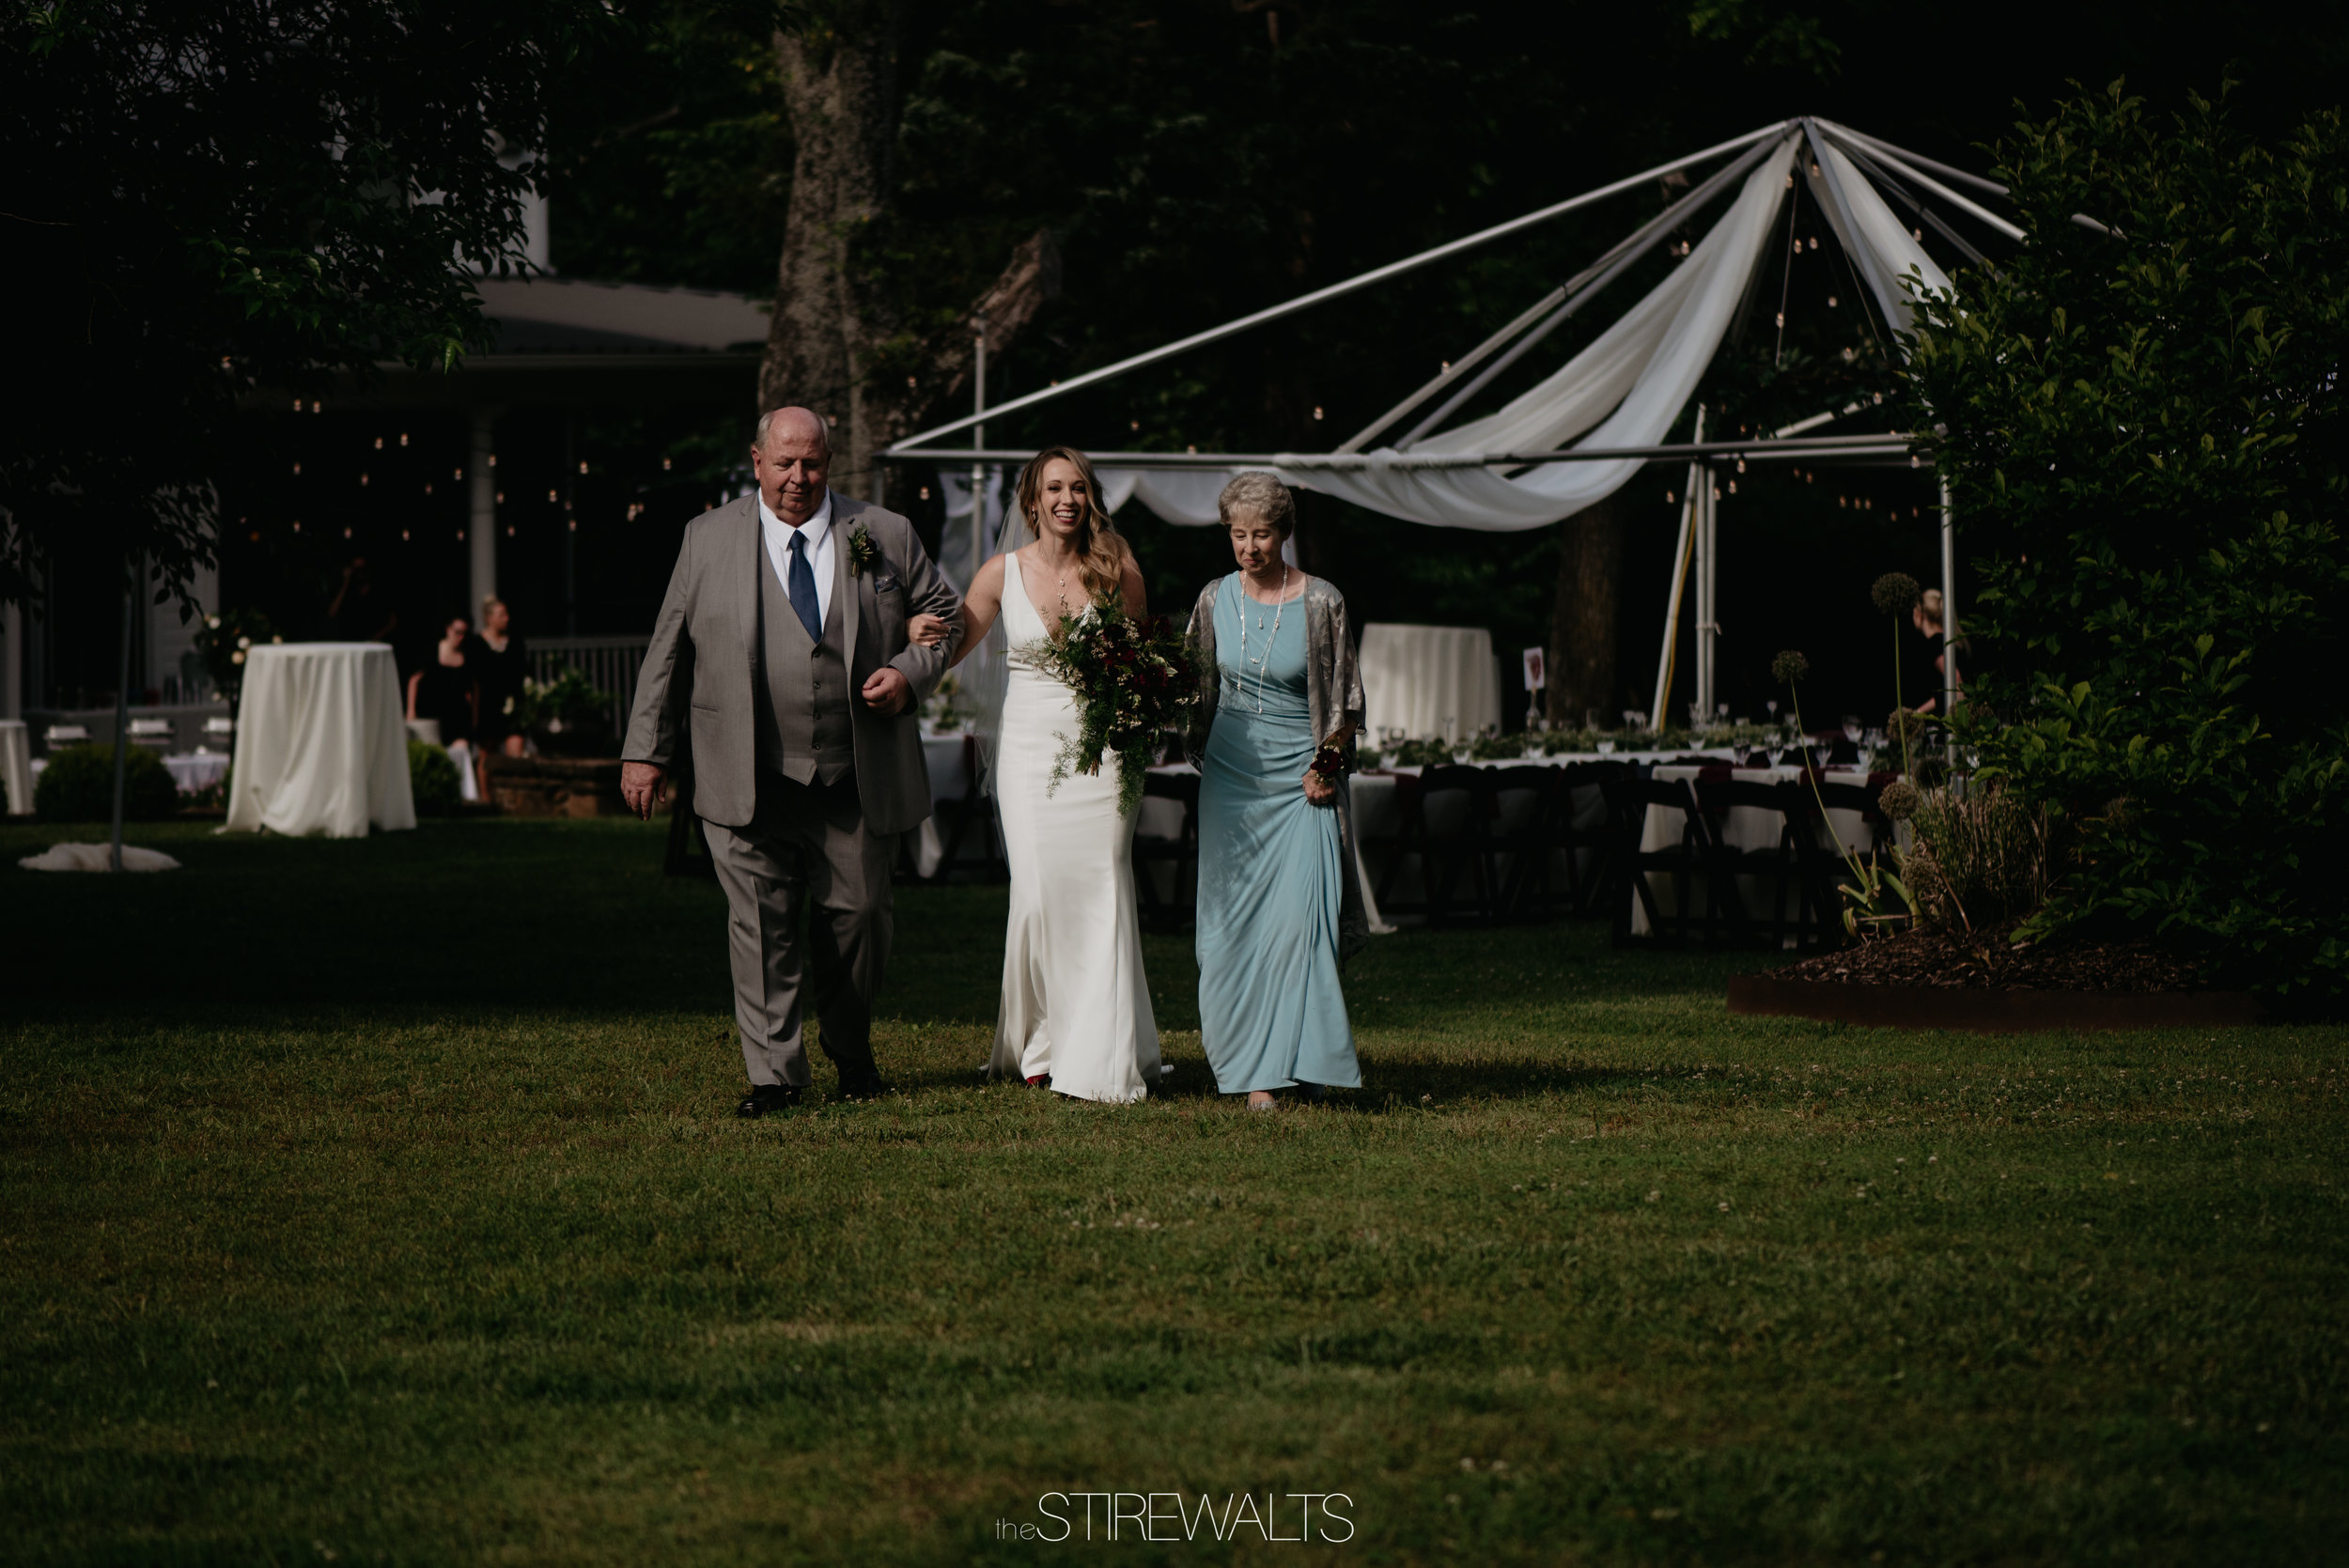 Kayla.Jay.Wedding.Blog.2018.©TheStirewalts-83.jpg